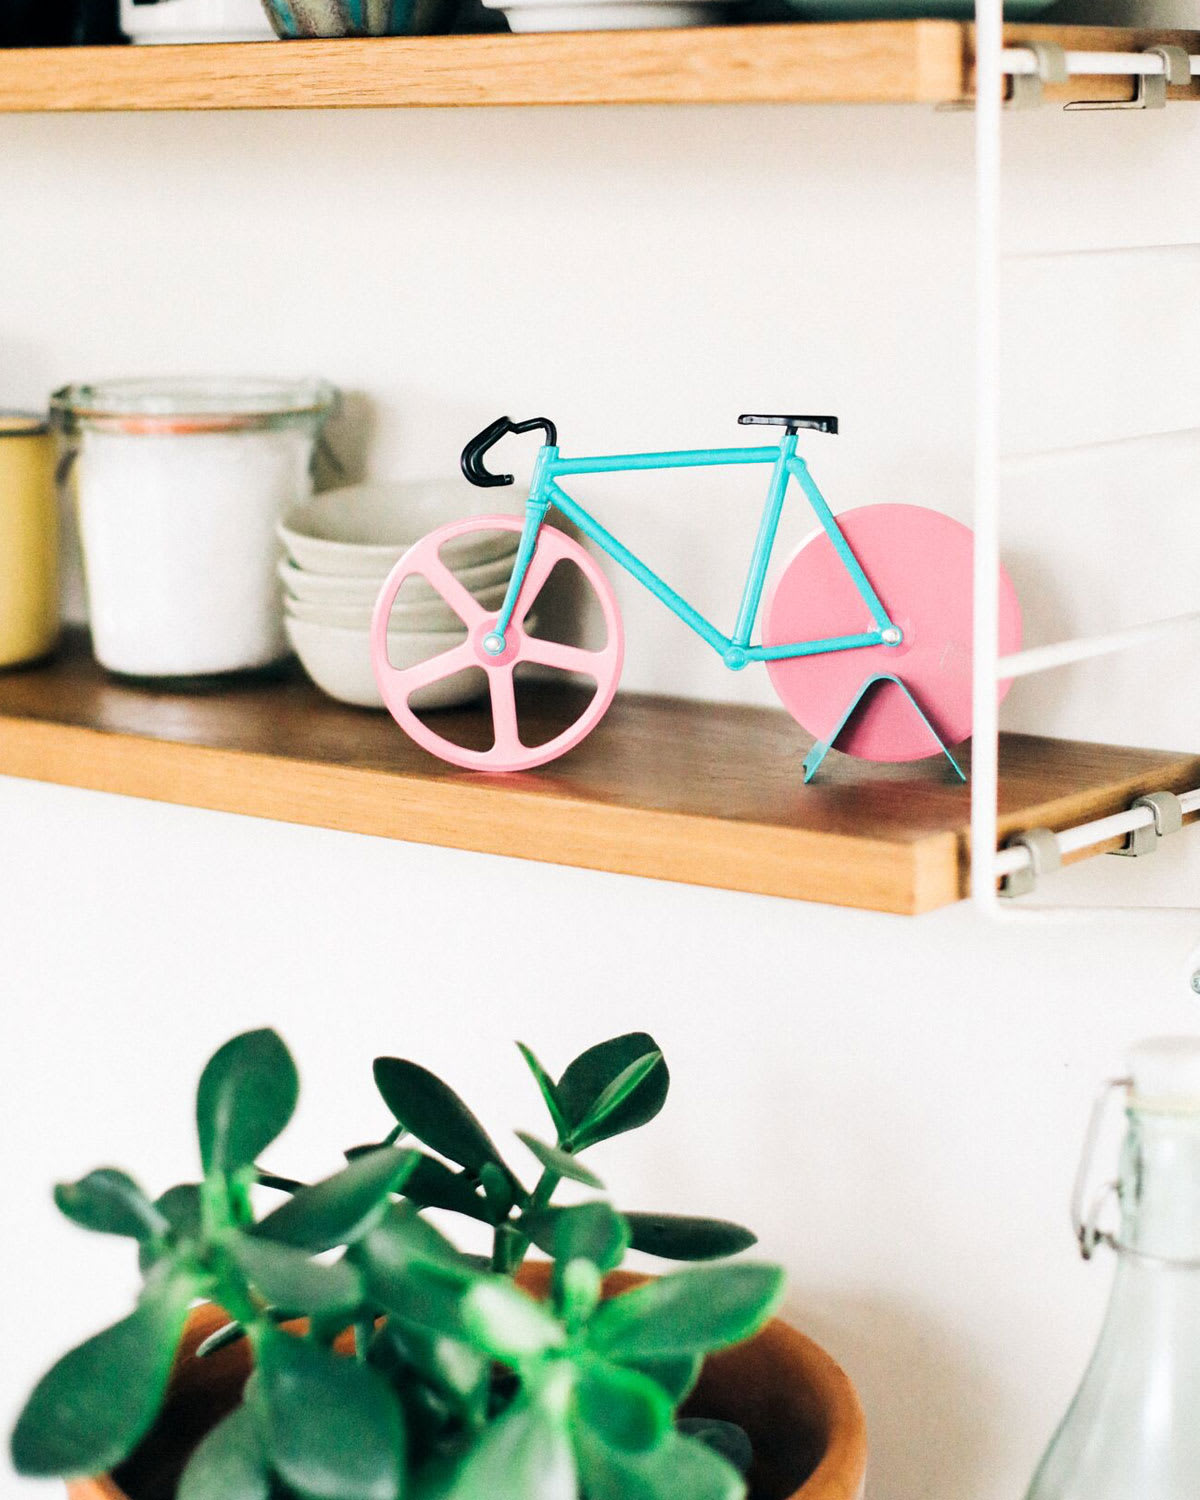 DOIY Design Watermelon Bicycle Pizza Cutter